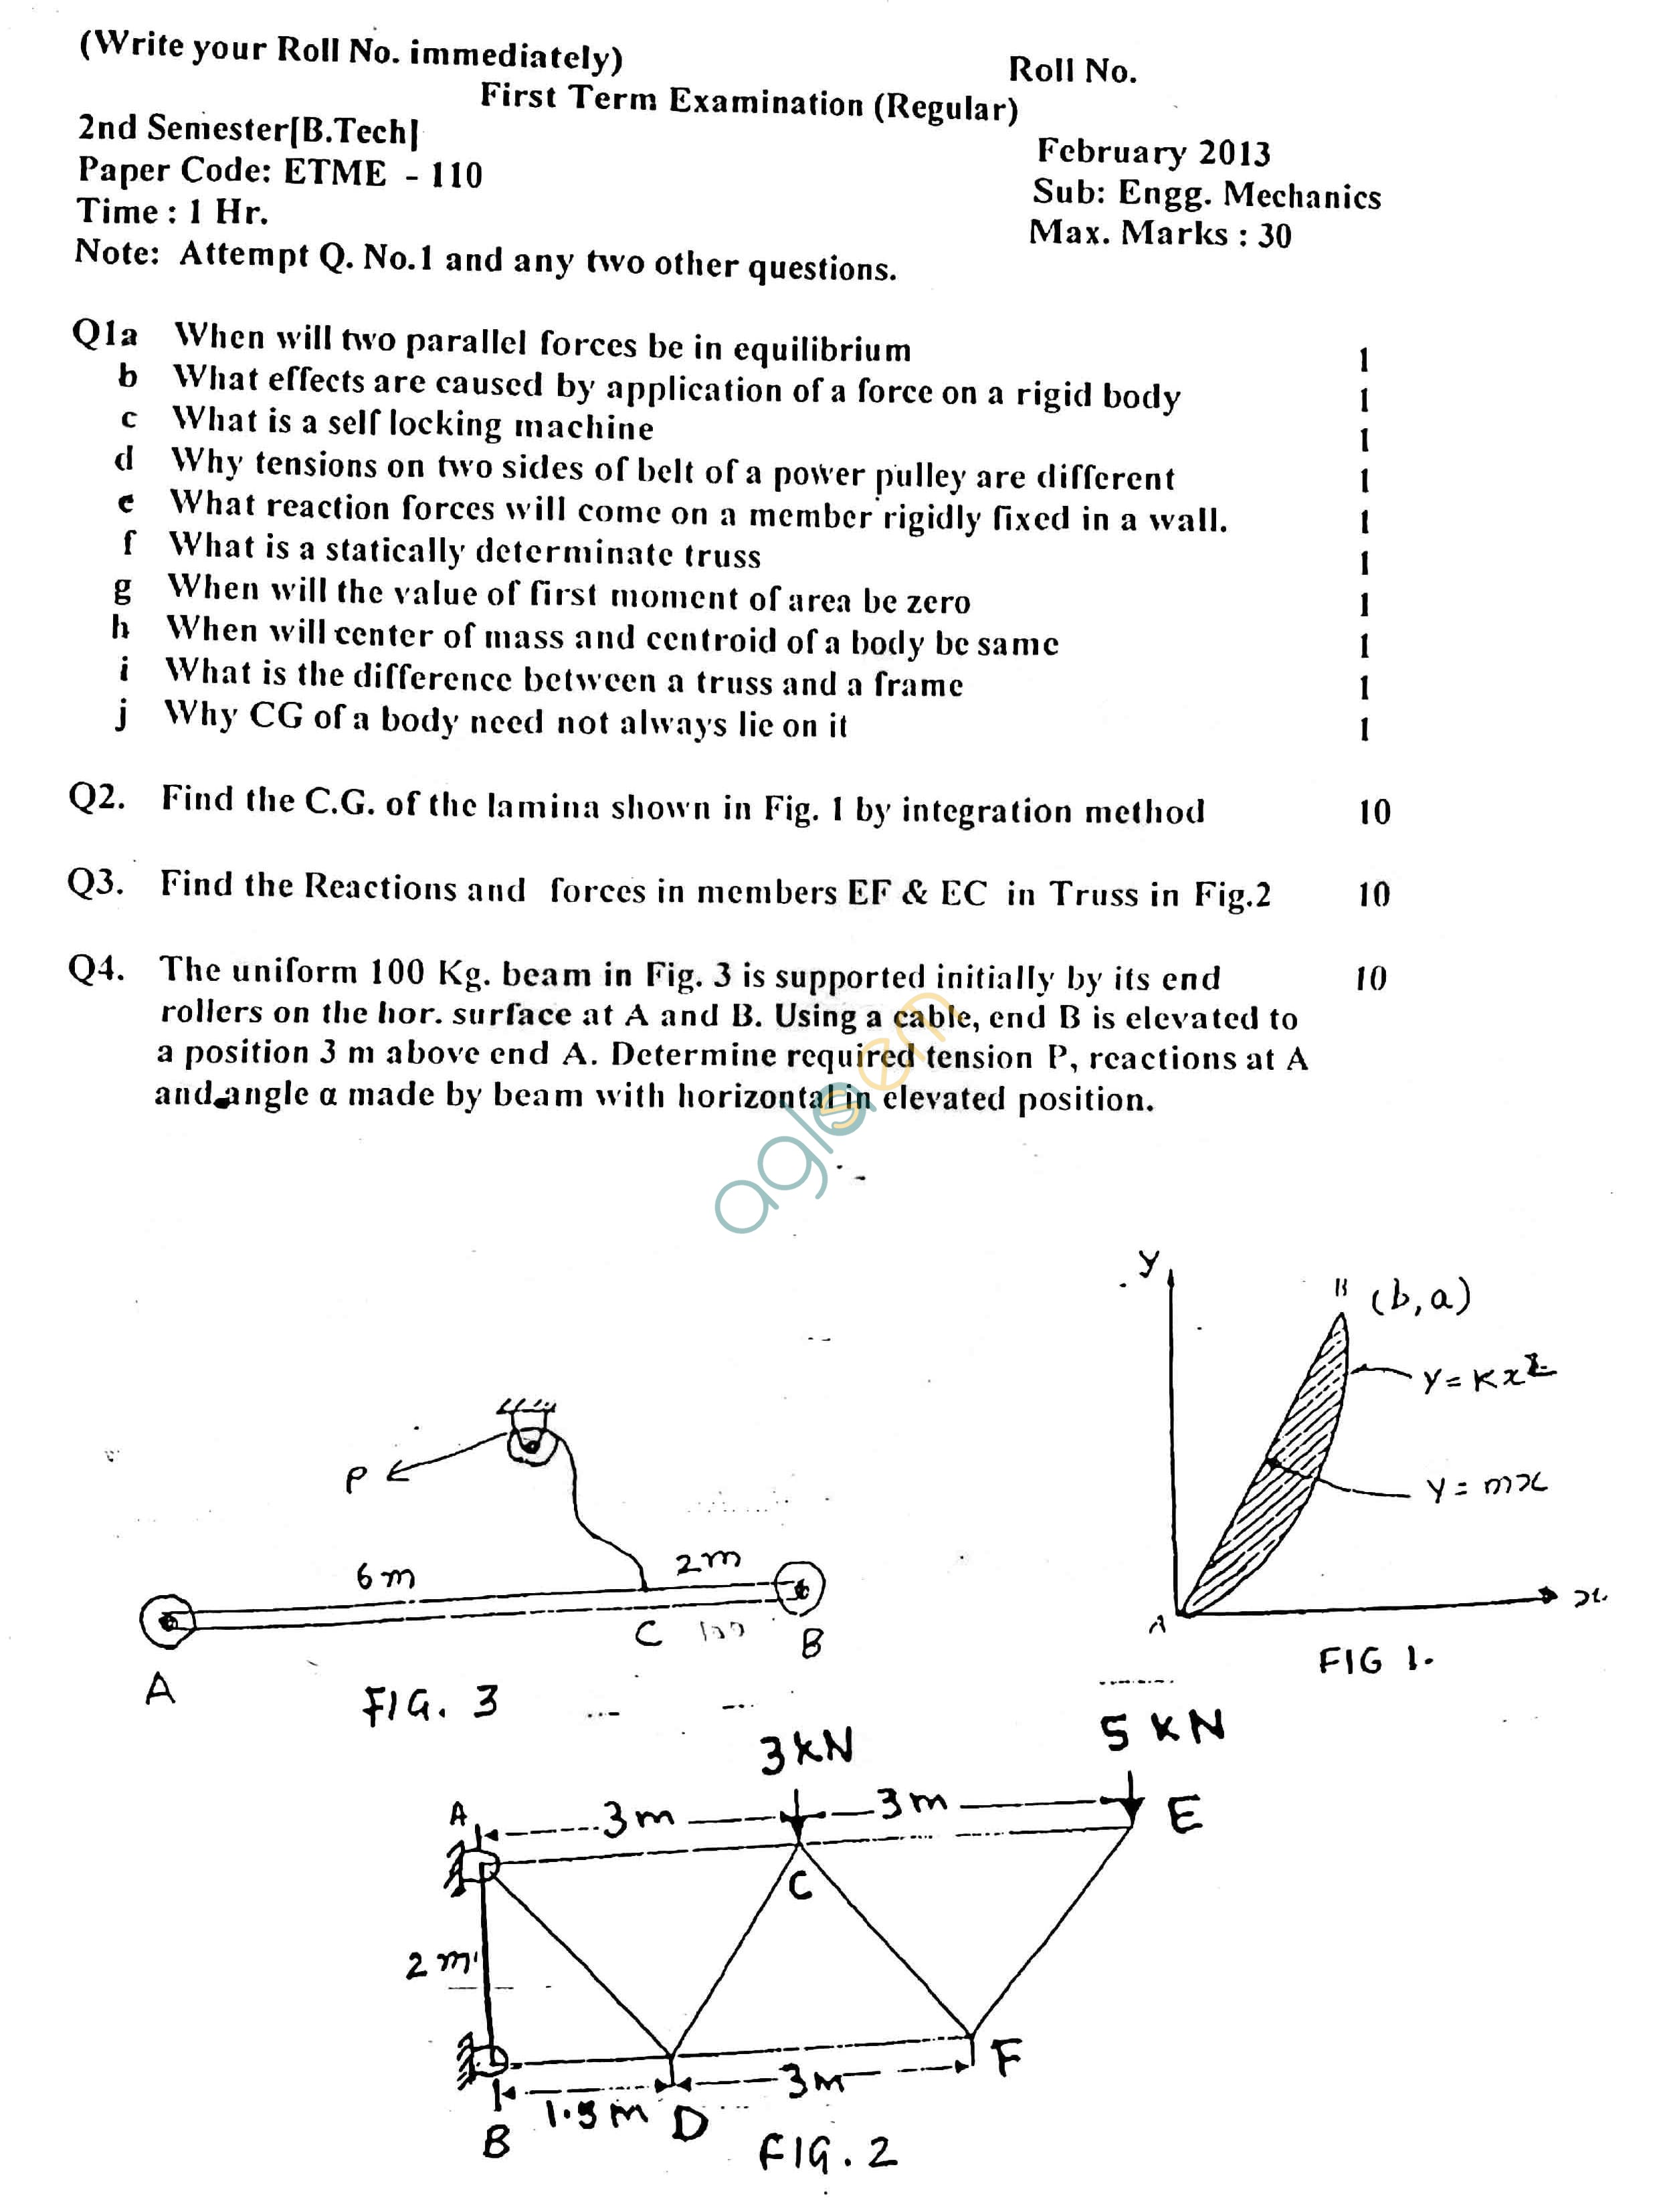 GGSIPU Question Papers Second Semester – First Term 2013 – ETME-110